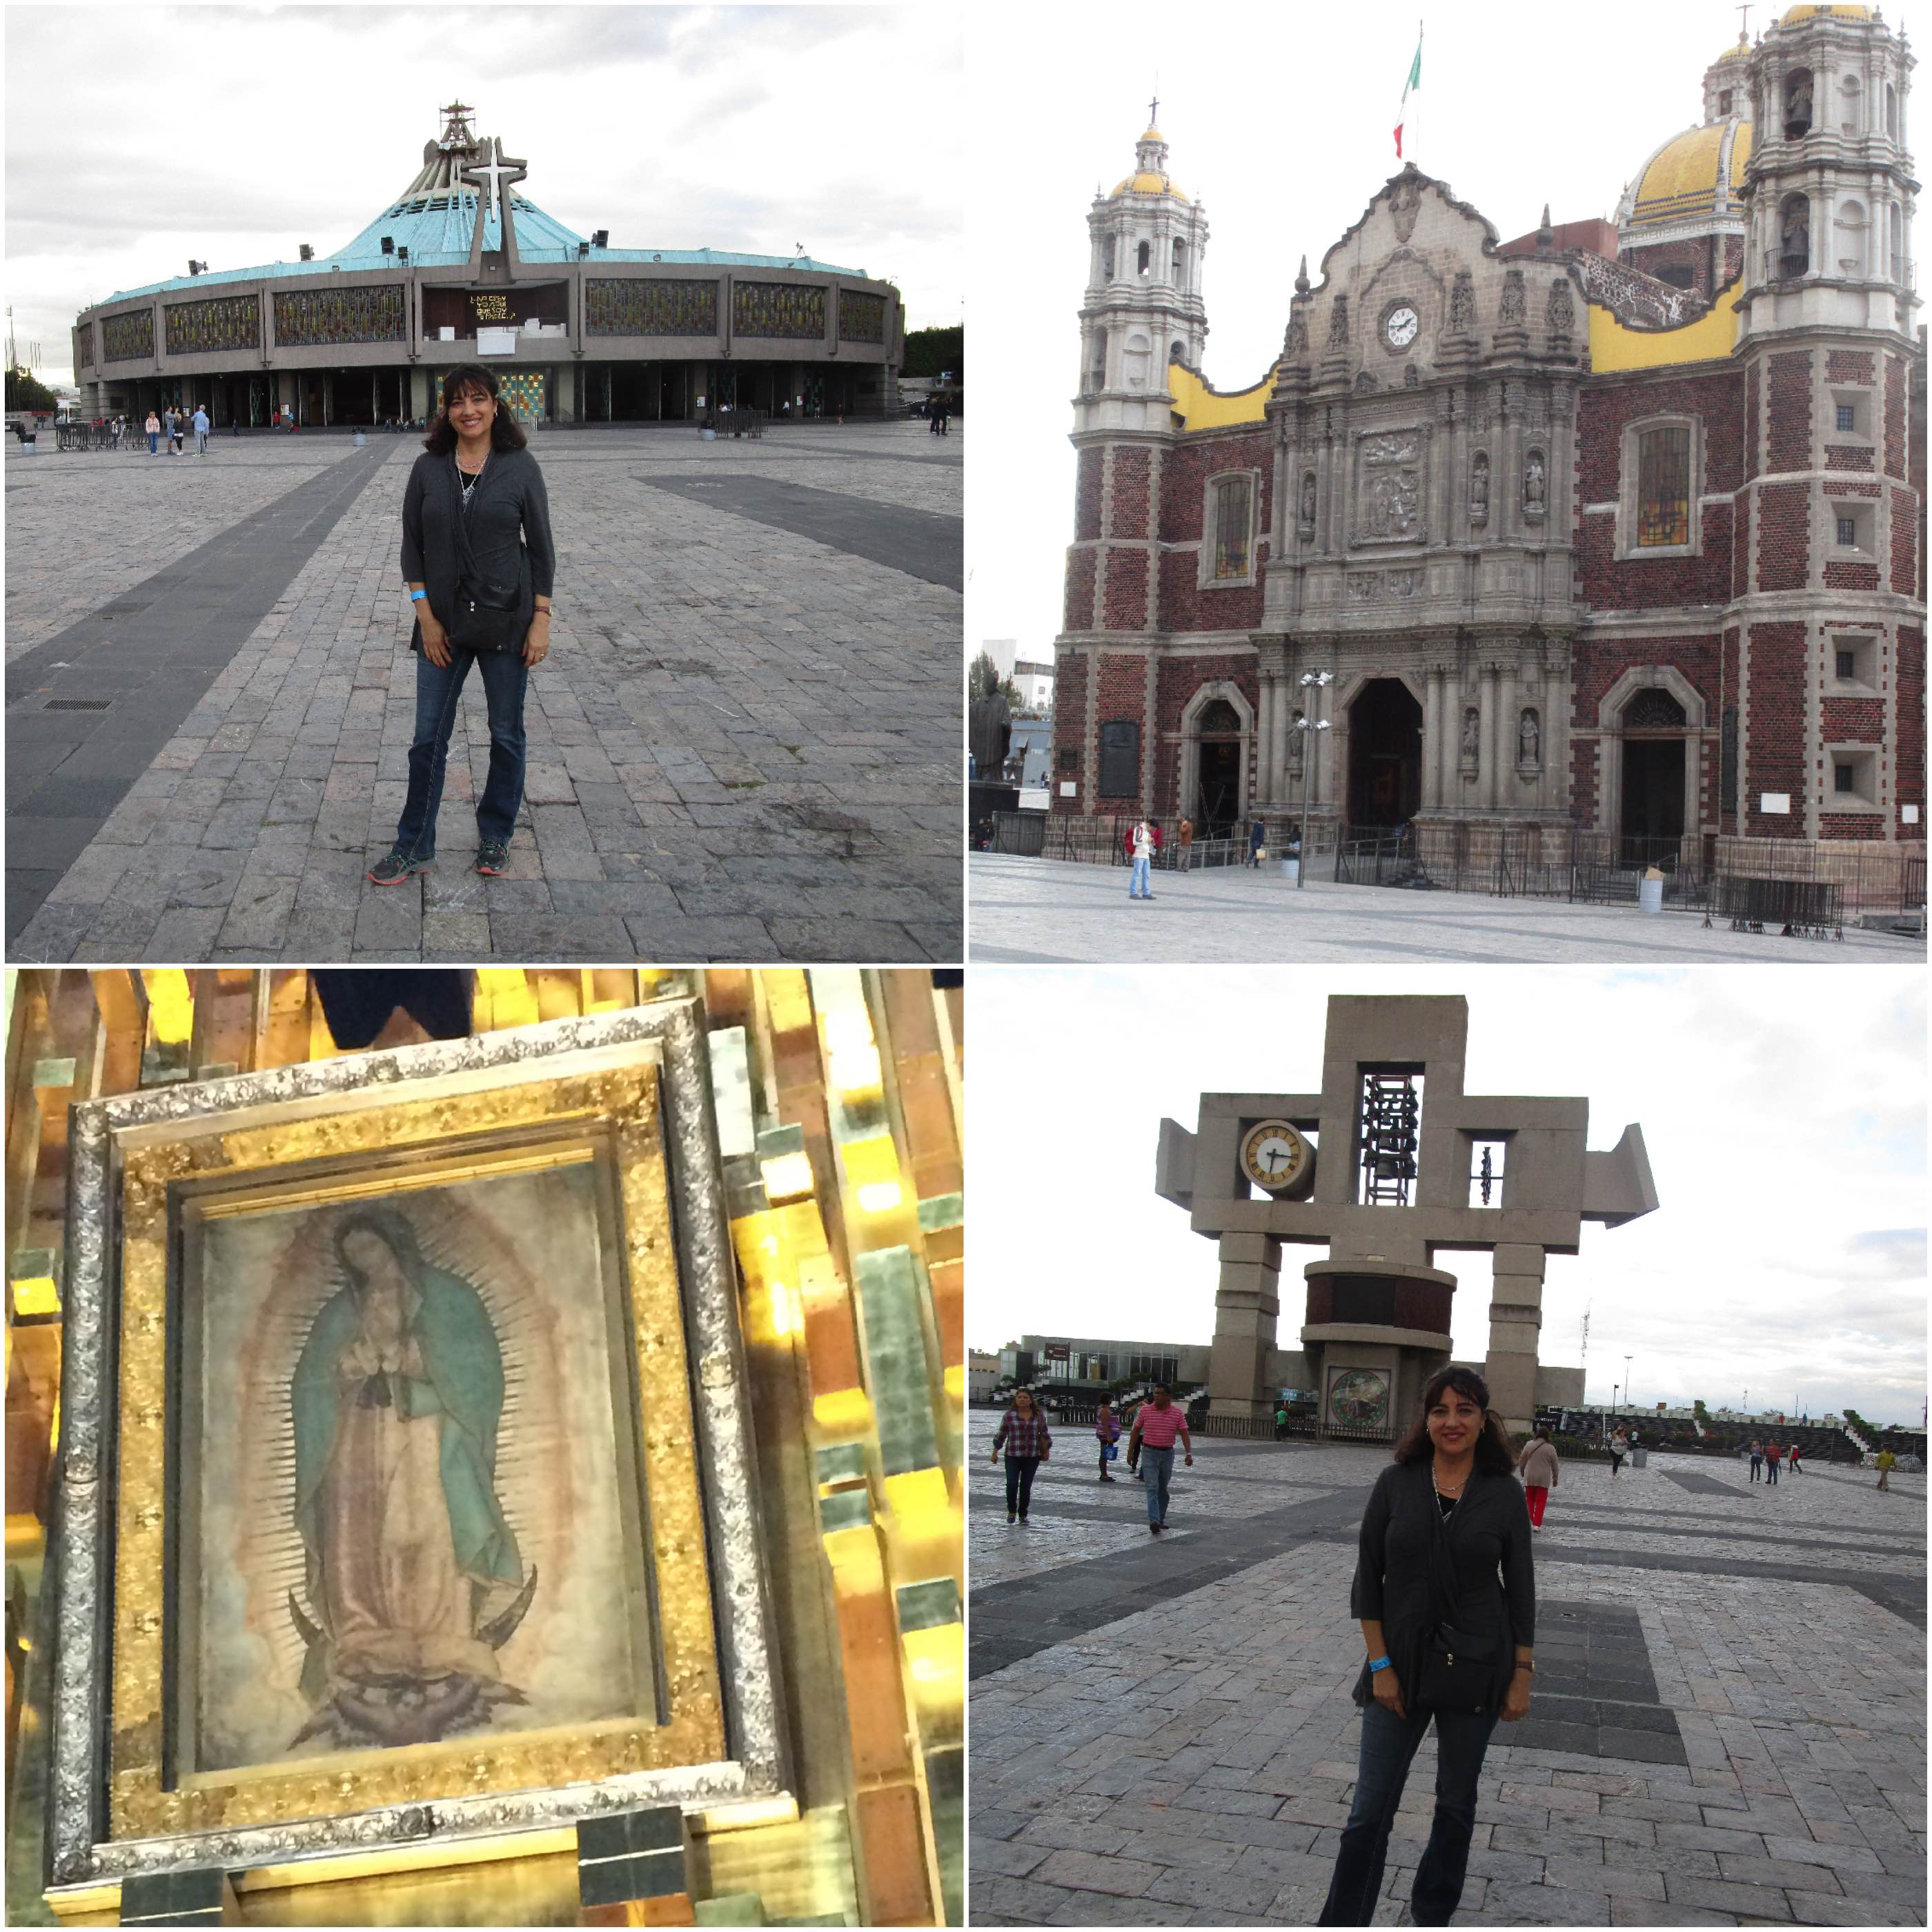 Basilica of the Virgin of Guadalupe